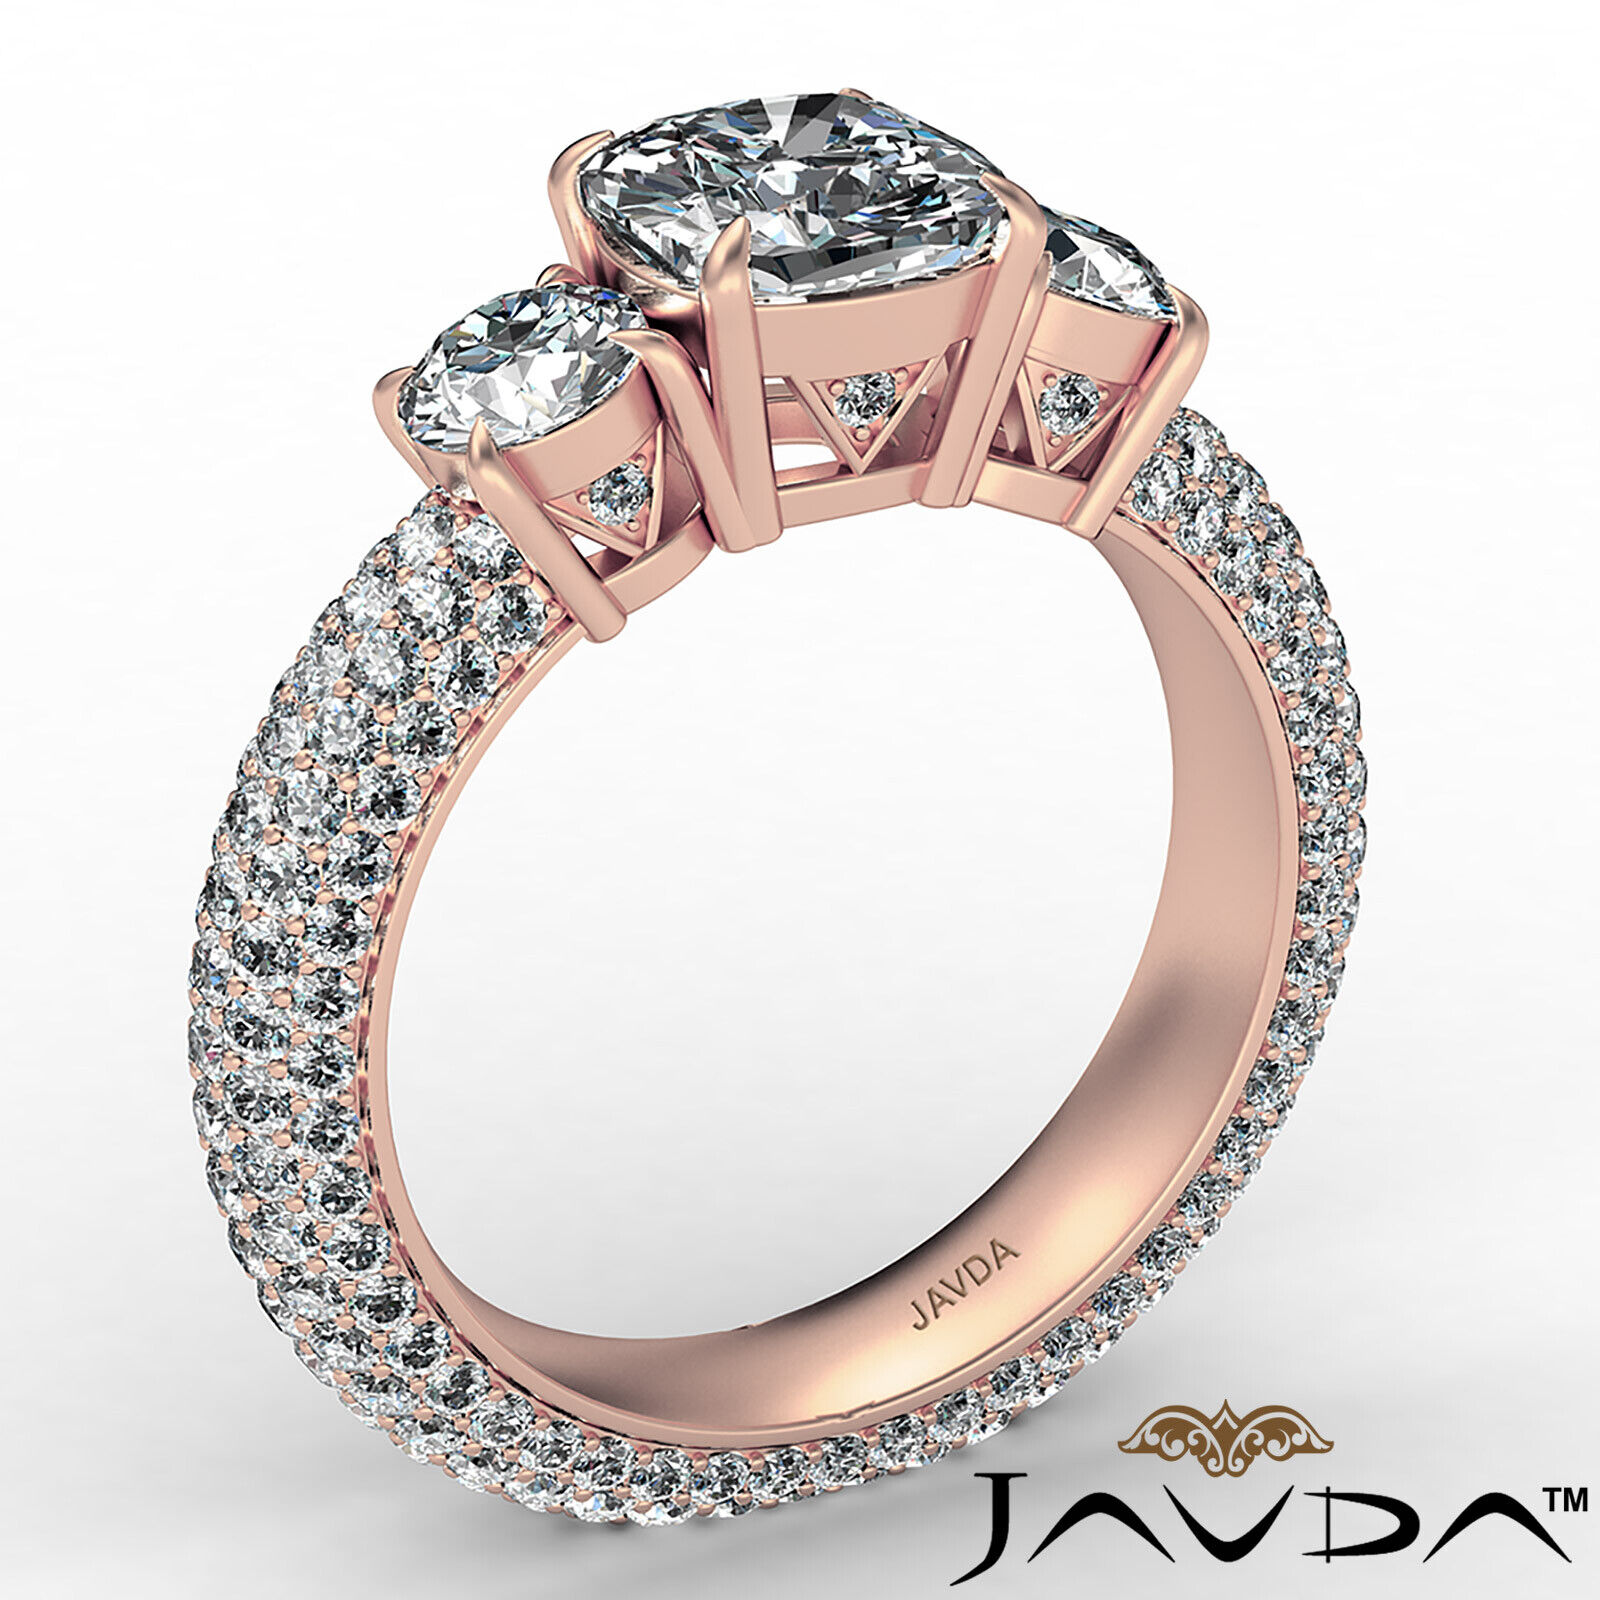 Cushion Diamond Engagement Ring Certified by GIA, G Color & SI1 clarity 3.44 ctw 5